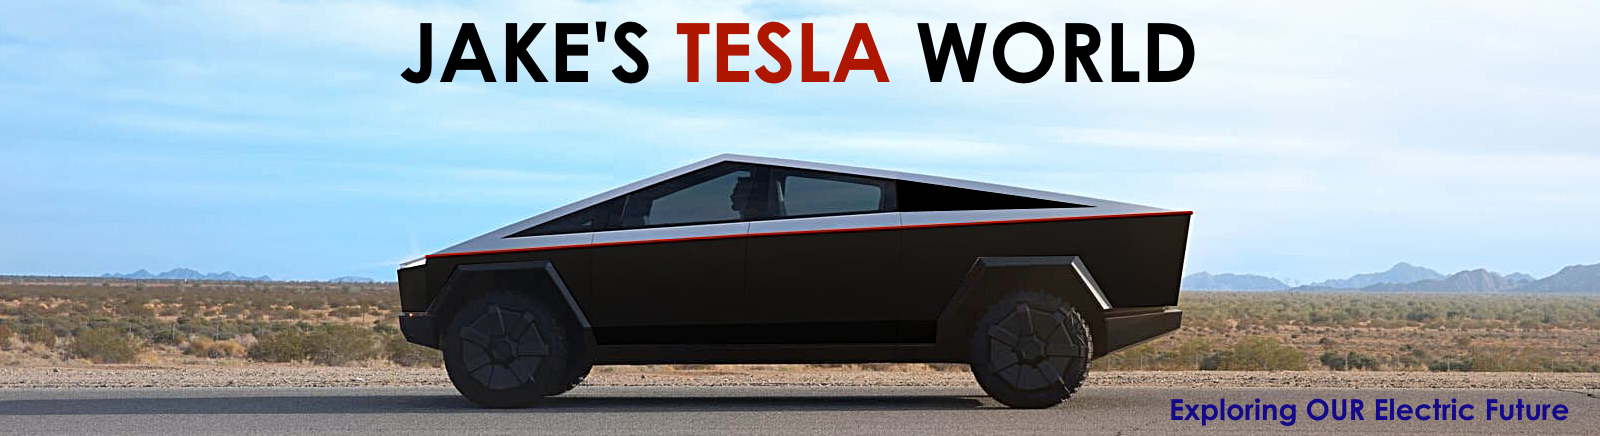 Welcome to TeslaMagazine.org...Home of Jake's Tesla World